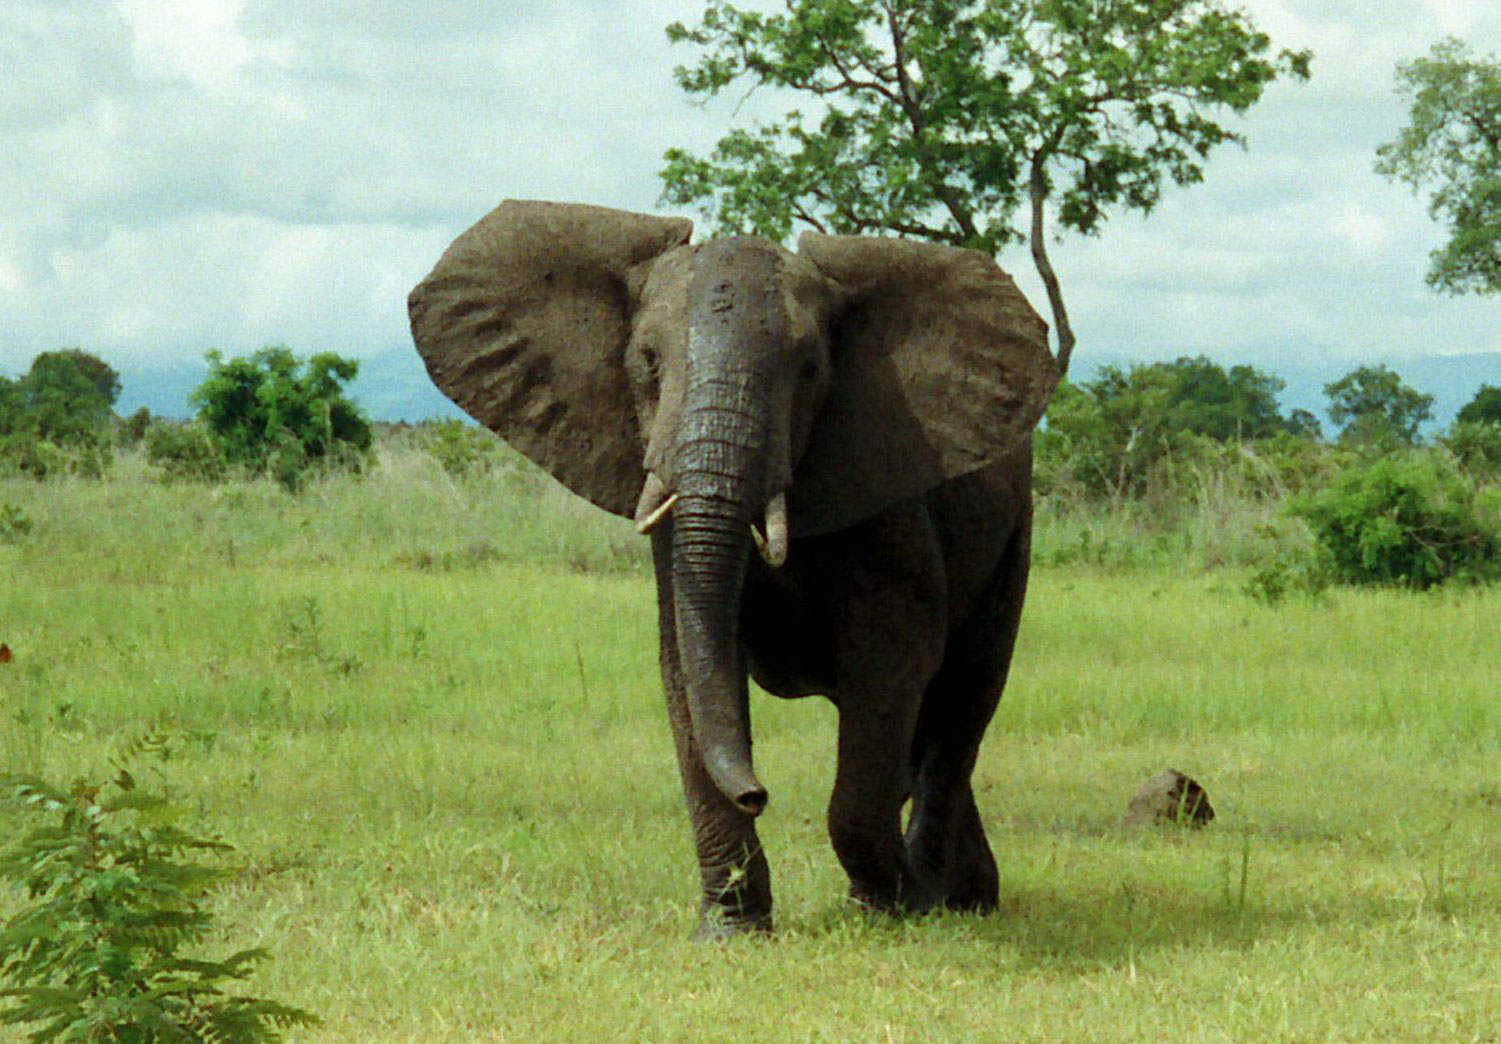 Elephant  The Biggest Animals Kingdom. Self Storage Pittsburgh Custom Control Asp Net. Accounting Software For Medium Sized Business. Professional Liabilty Insurance. Hotels World Trade Center Mortgage Houston Tx. Current Interest Rate On Saving Account. American Beauty Academy Wheaton. Secure Coding Practices Exchange Email Log In. Best Plastic Surgeons Las Vegas